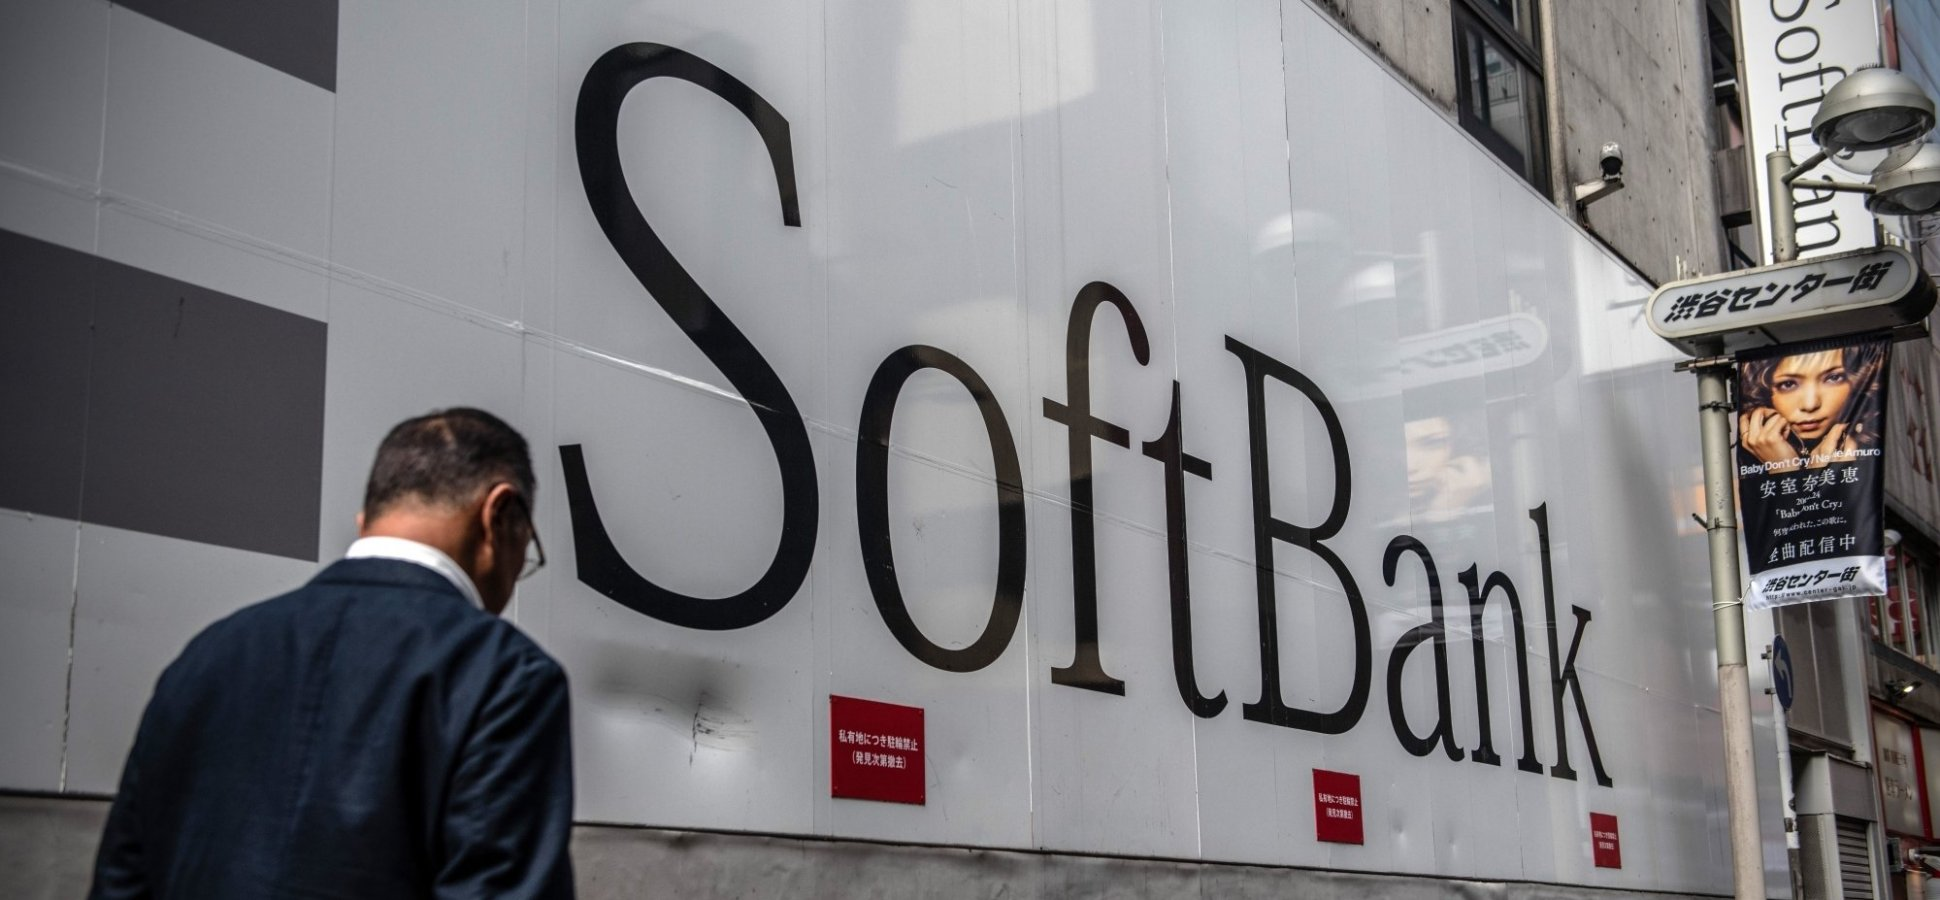 WeWork Is Taking a Bailout From SoftBank, a Deal Which Will Value the Company At a Reported $7.5 to $8 Billion